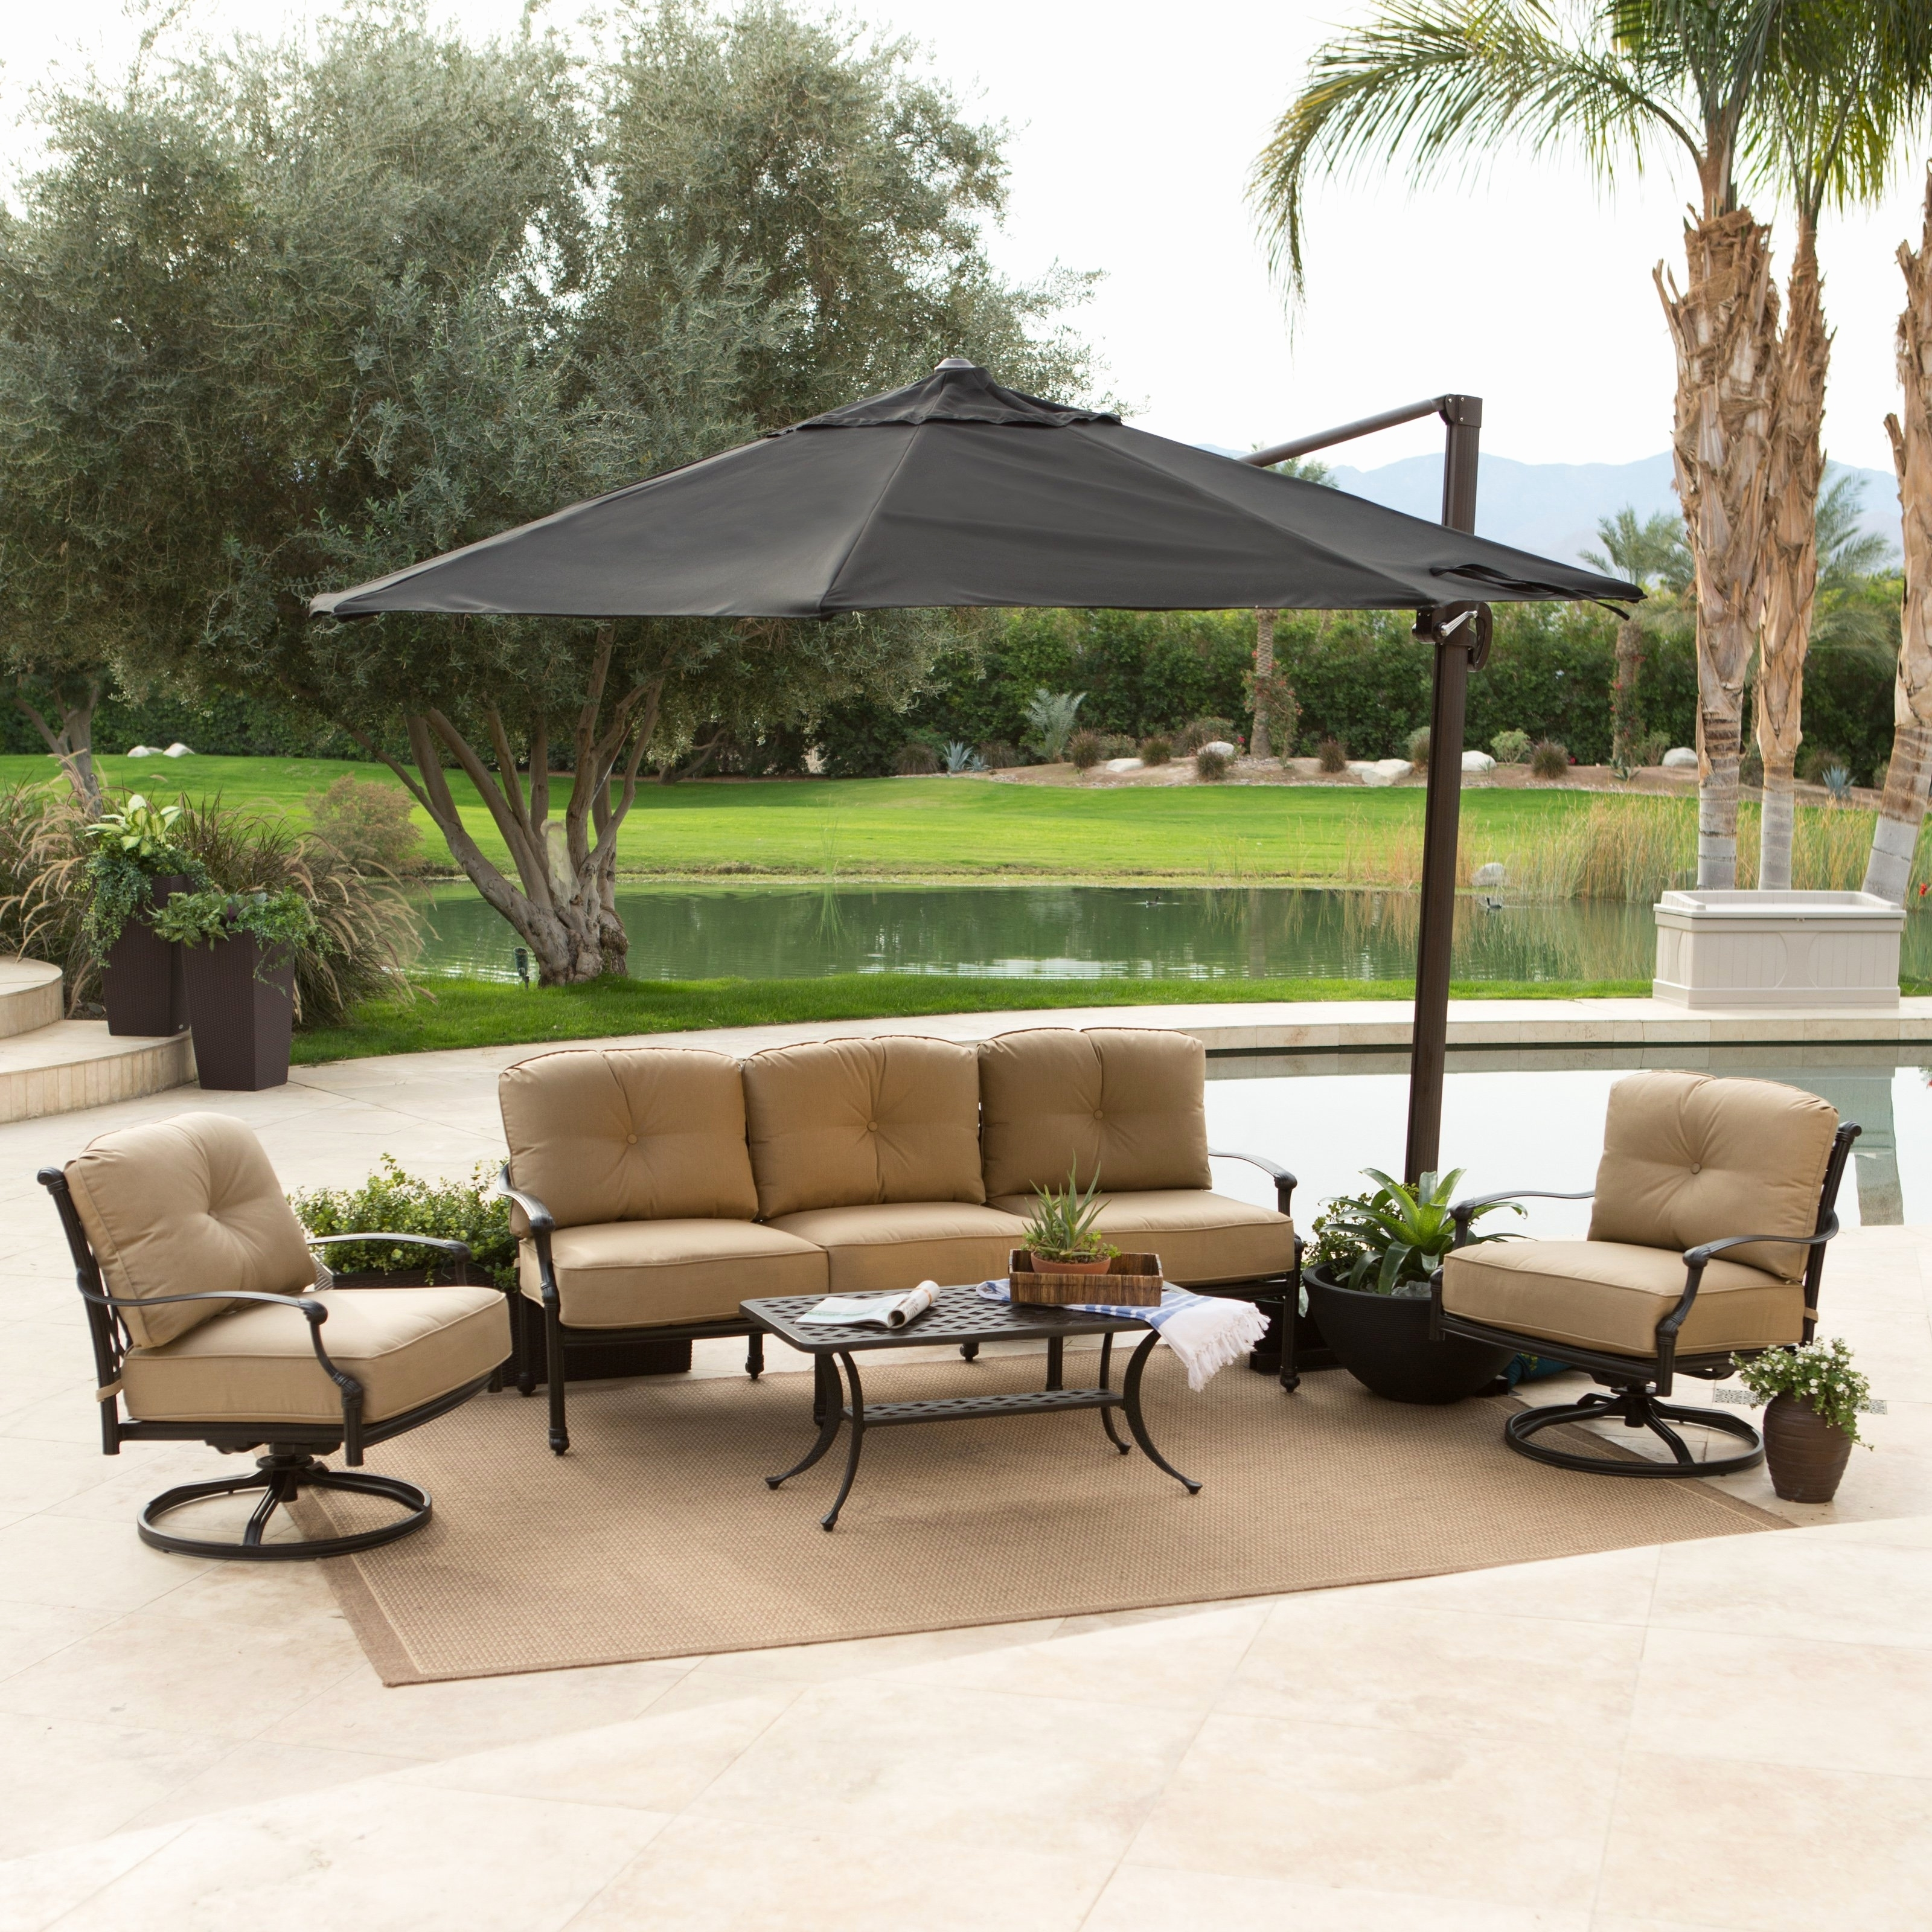 Vinyl Patio Umbrellas With Fringe For Well Known Vinyl Patio Umbrellas With Fringe (View 16 of 20)